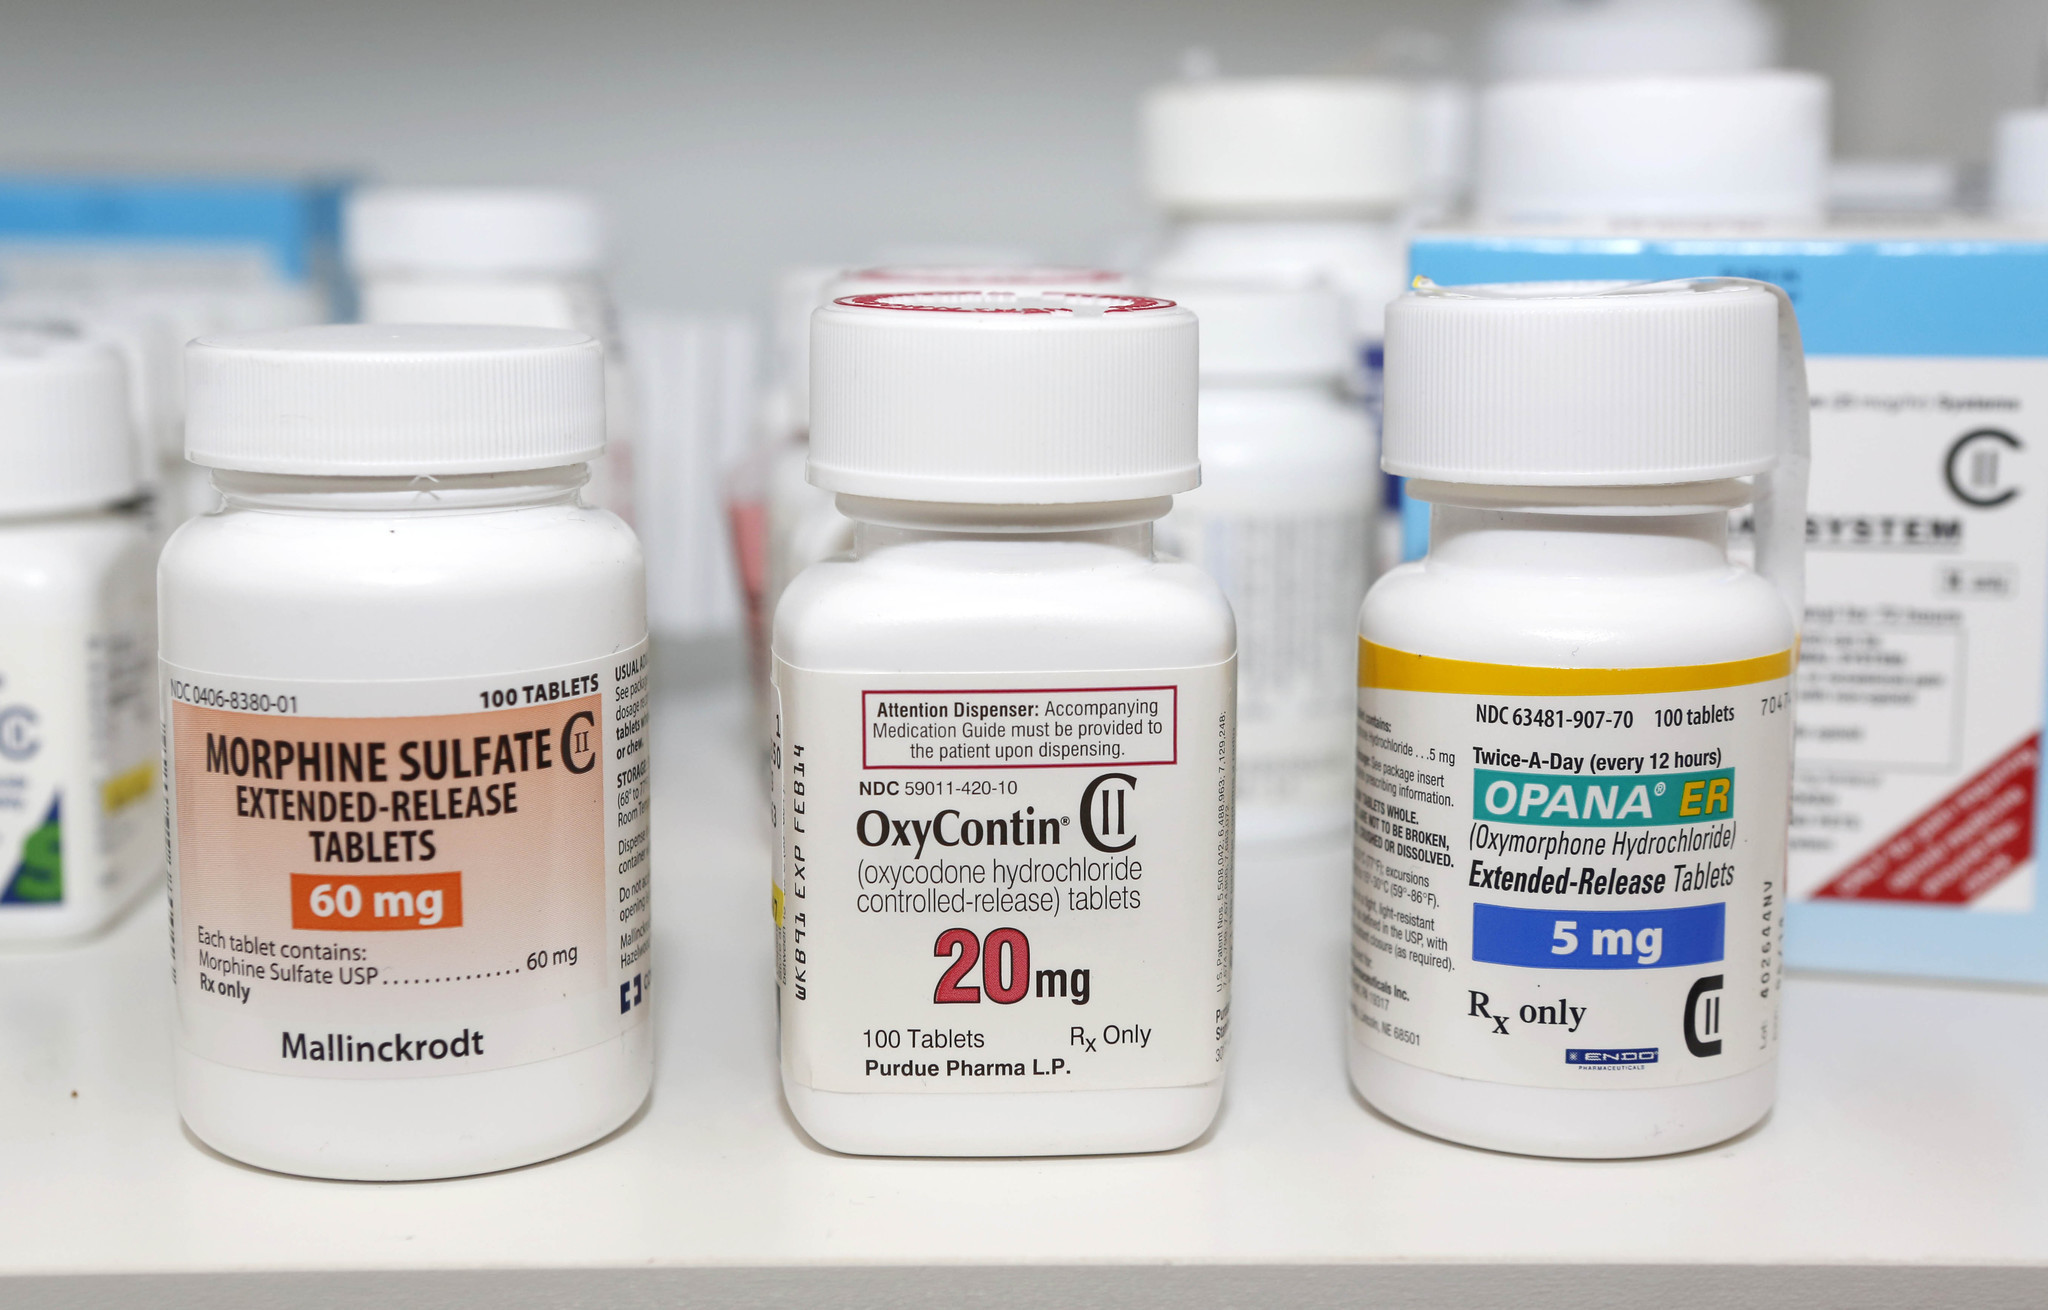 chicago wrongheaded to prescribe licensing of drug s reps chicago wrongheaded to prescribe licensing of drug s reps chicago tribune